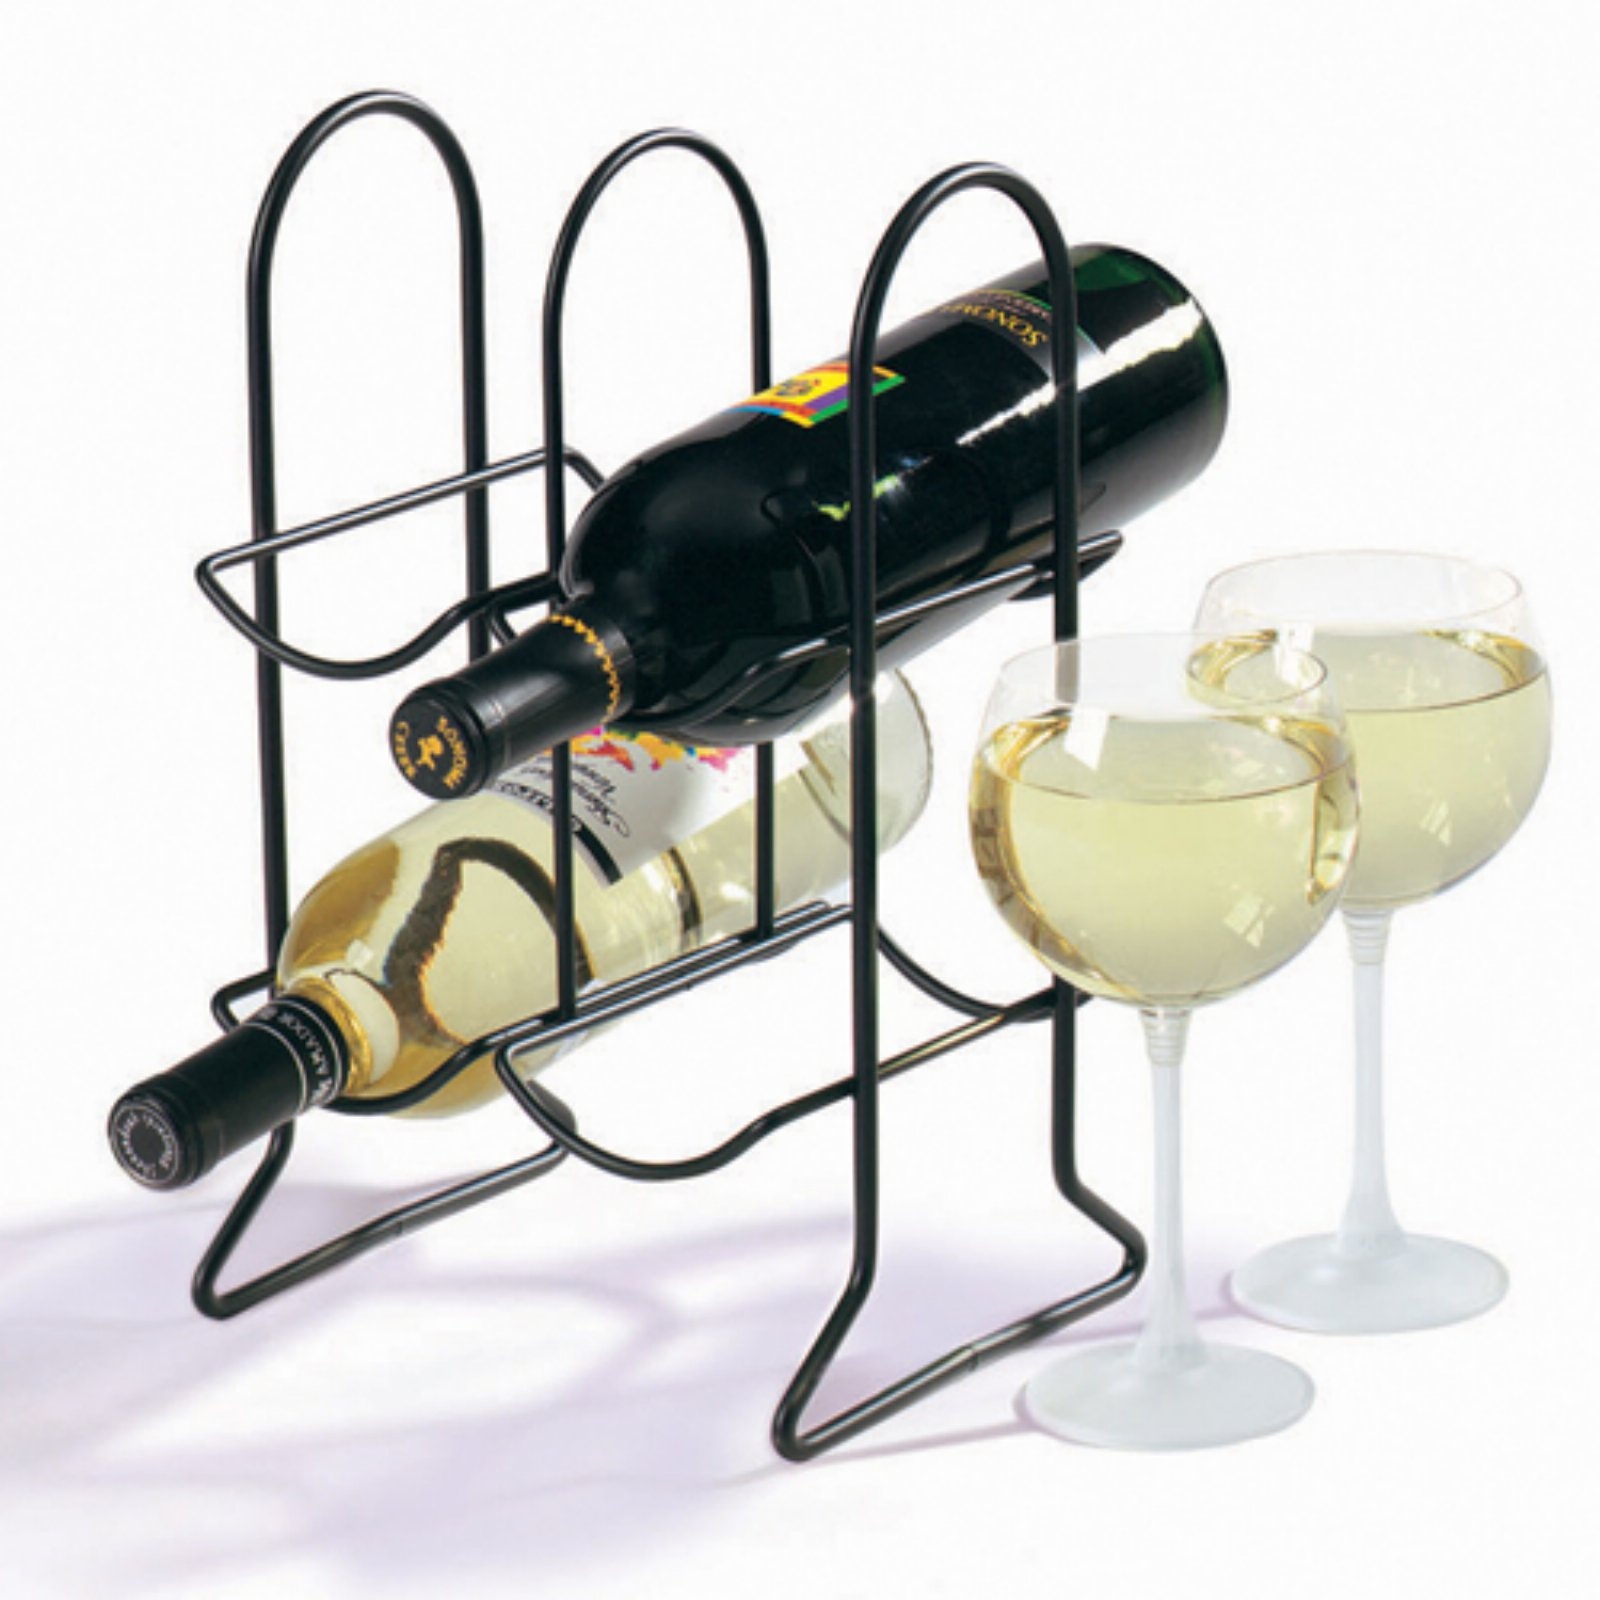 Townhouse 6-Bottle Wine Rack Black by Spectrum